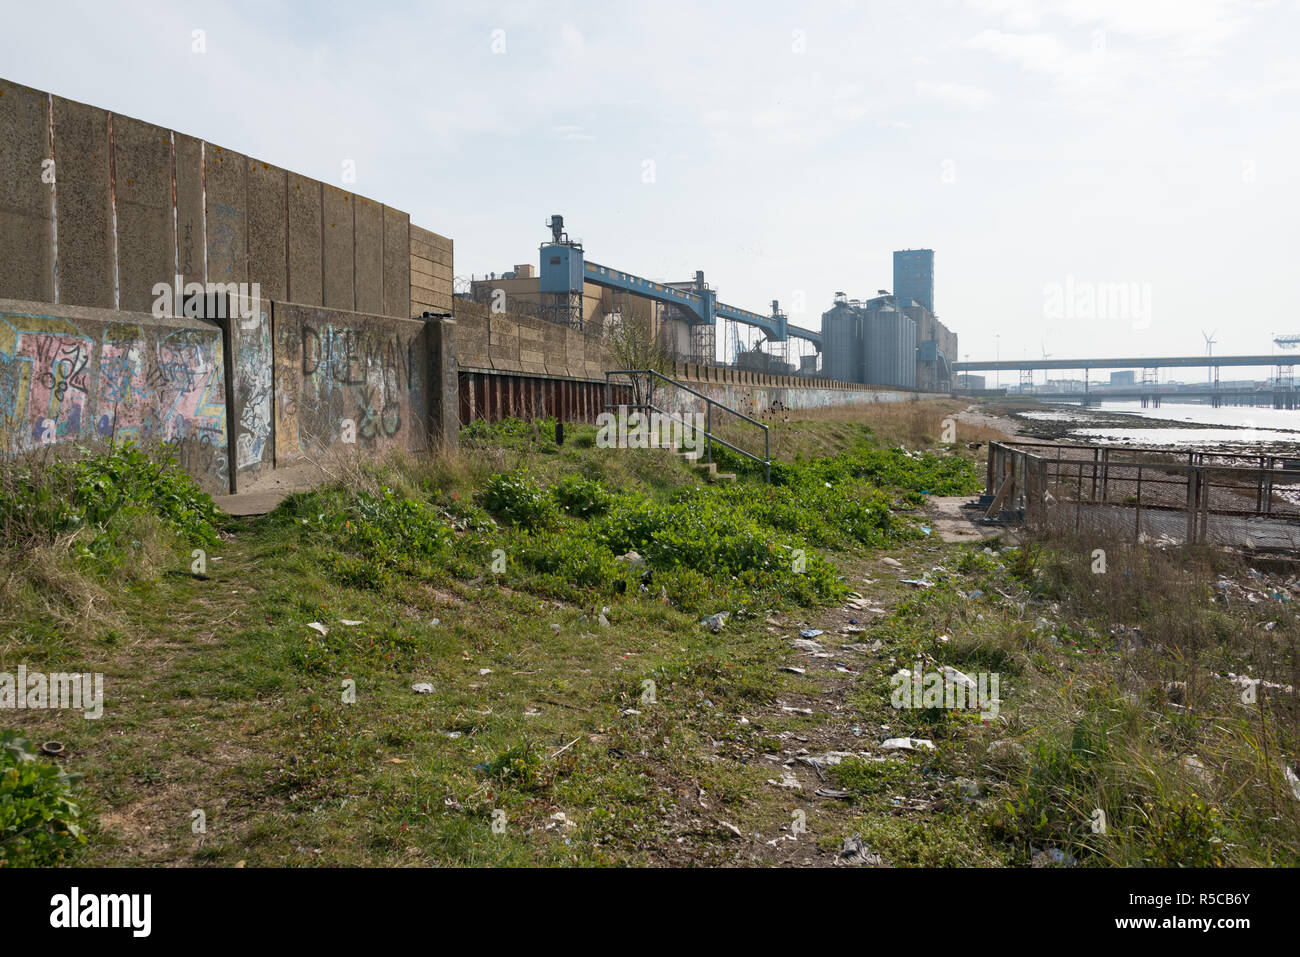 Rubbish strewn on the grass by the Thames estuary at Grays, Essex with the Allied Mills buildings seen behind - Stock Image